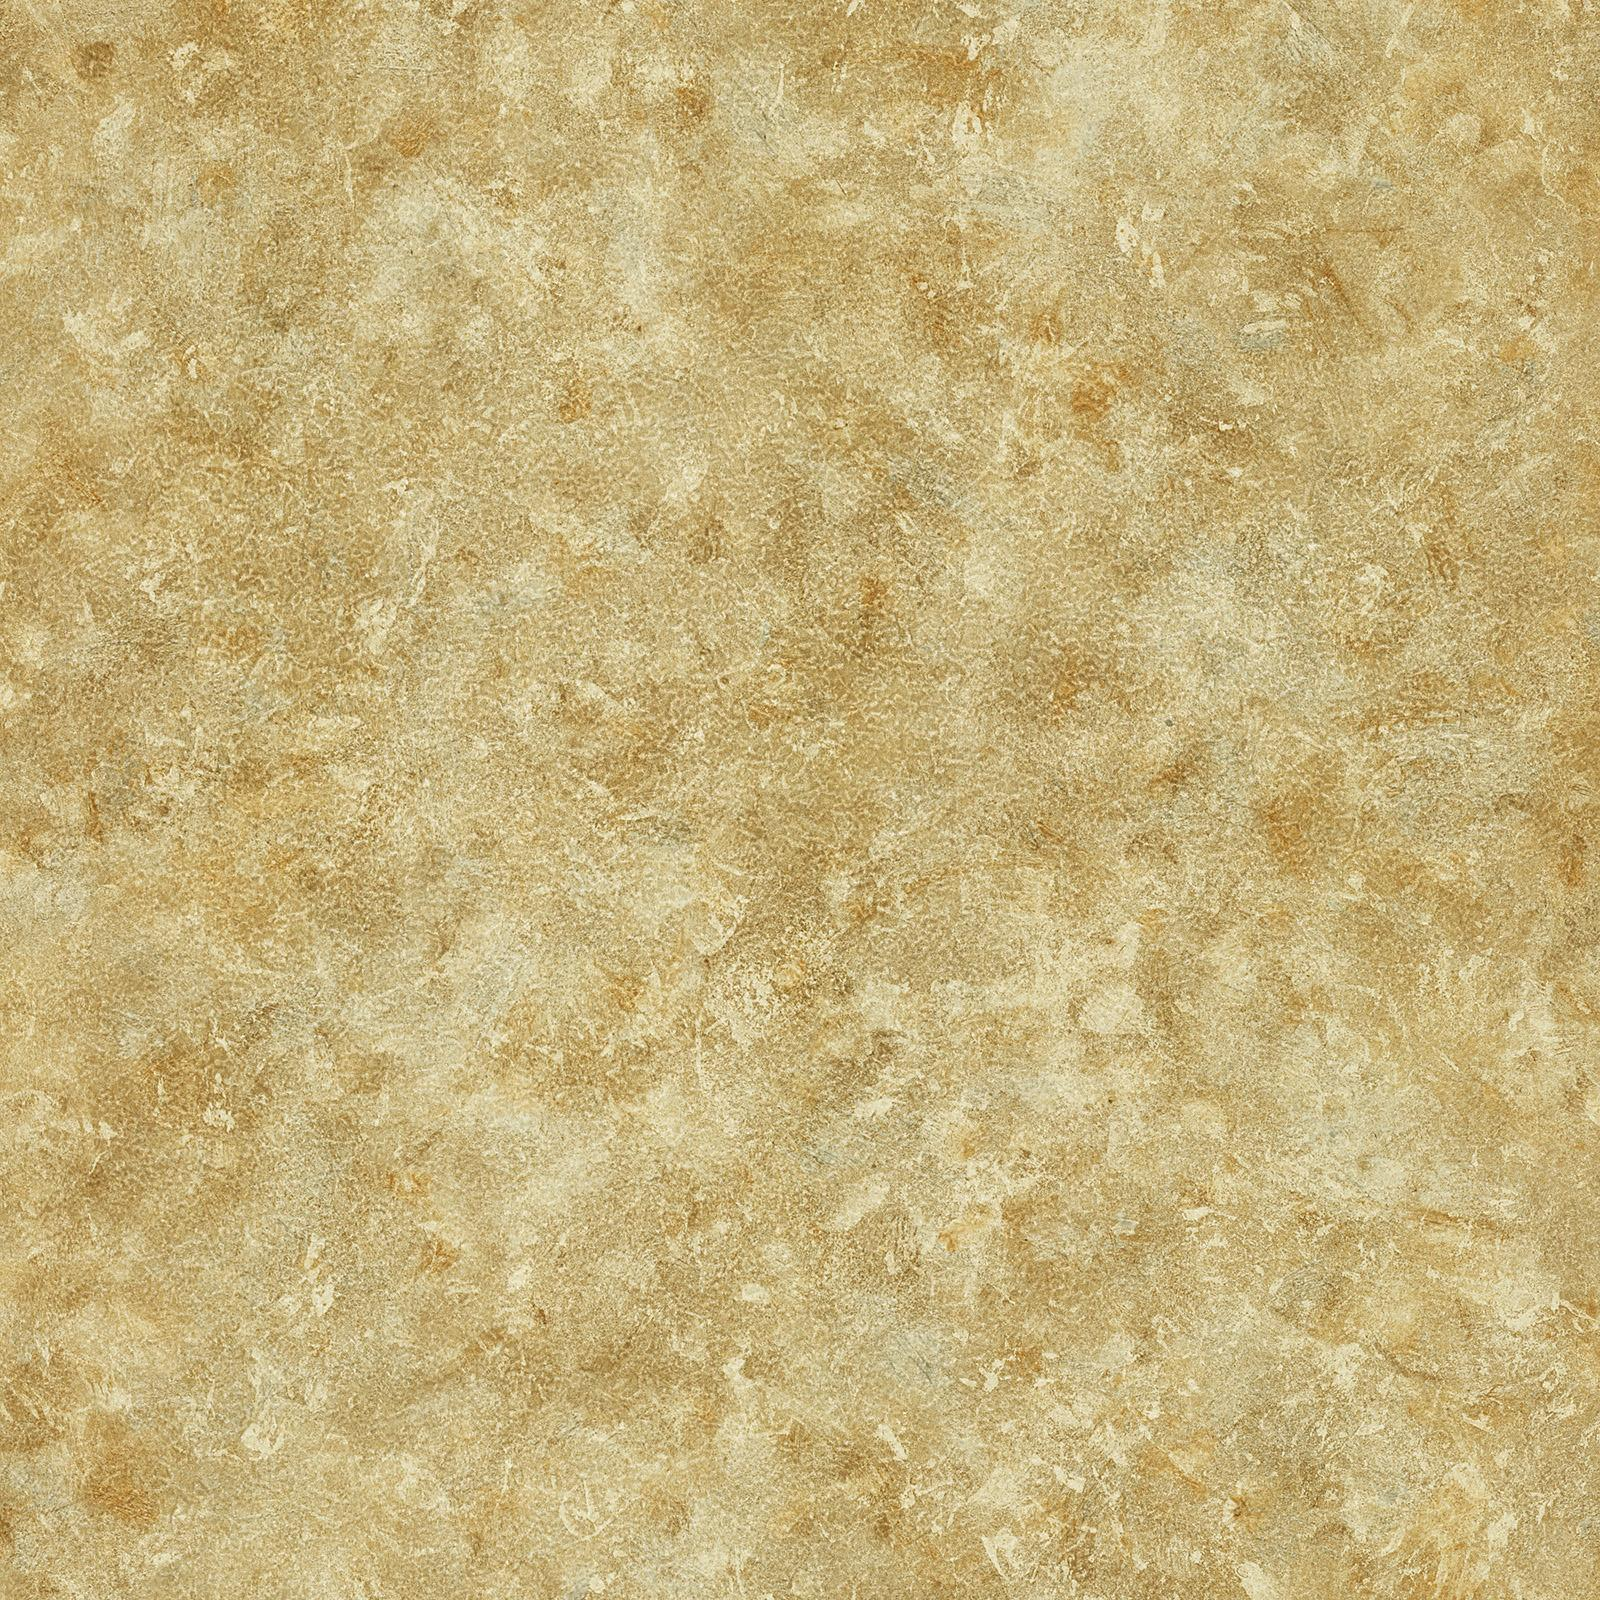 Brewster Corinne Tuscan Texture Wallpaper Tawny